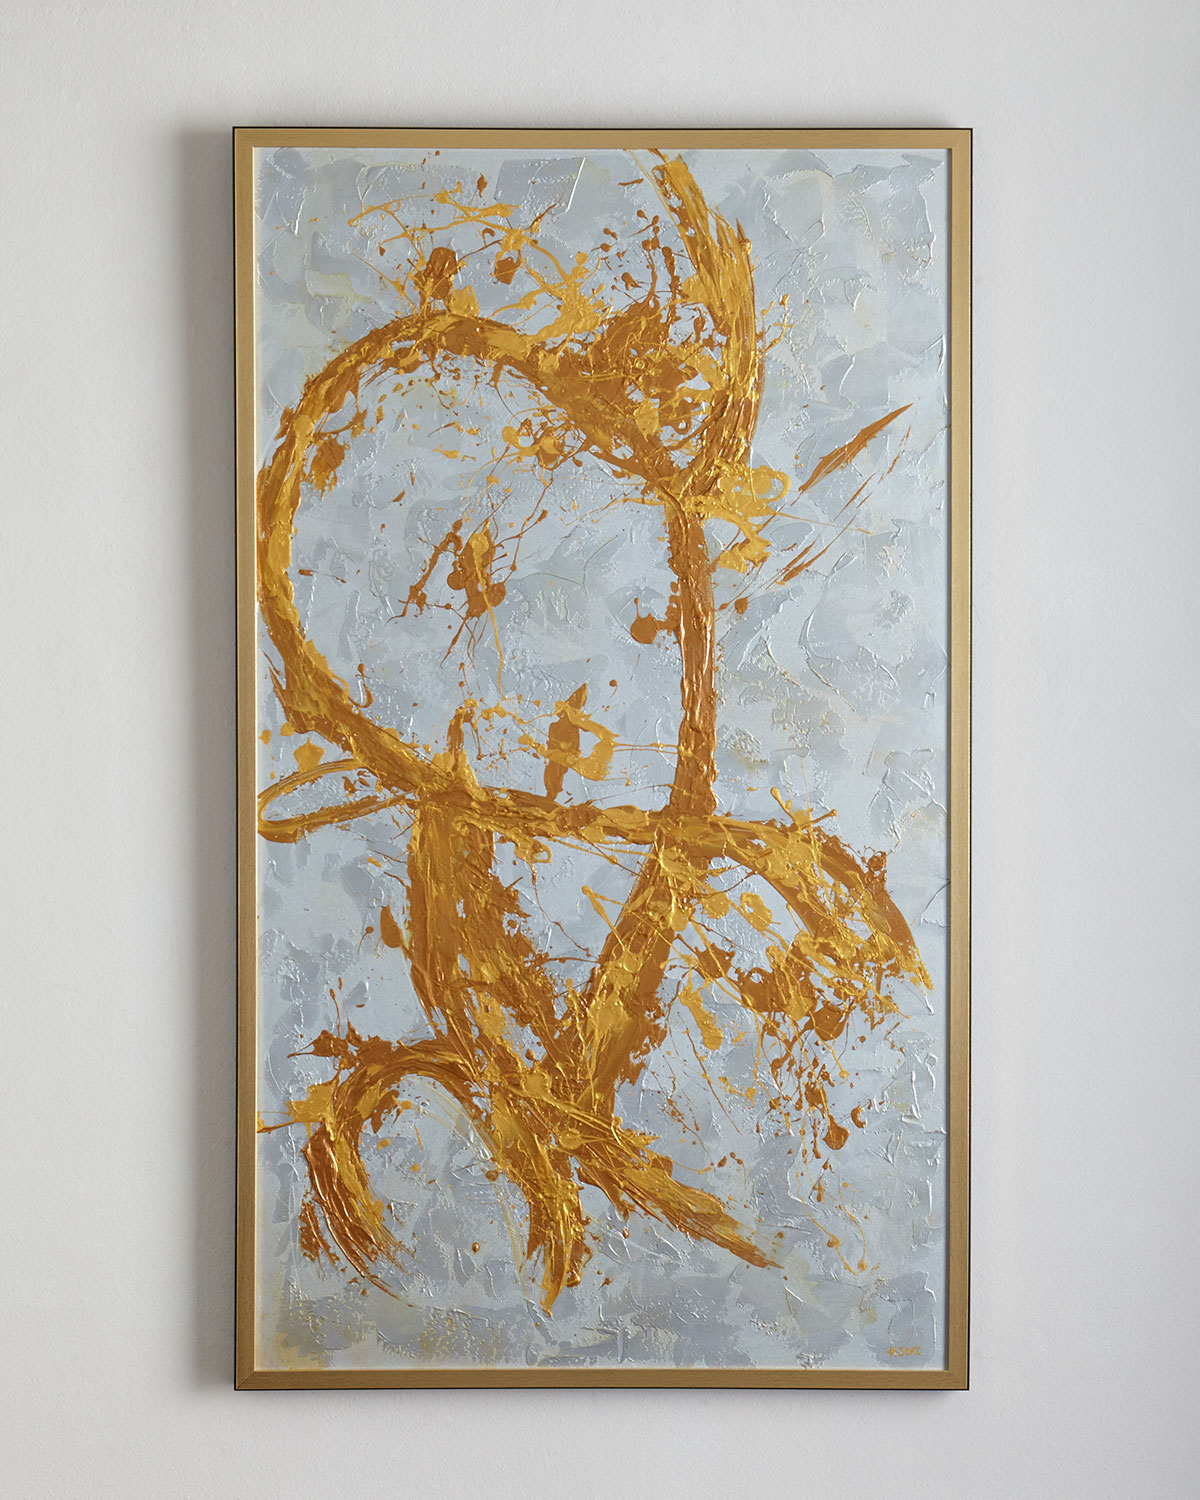 """Artist: Howard Scott. Original abstract splatter-style acrylic on canvas; only one available. 42.5""""W x 2""""D x 72.5""""T. Heavy texture. Wood frame. Handcrafted in the USA. Weight, 22 lbs. Boxed weight, approximately 70 lbs."""